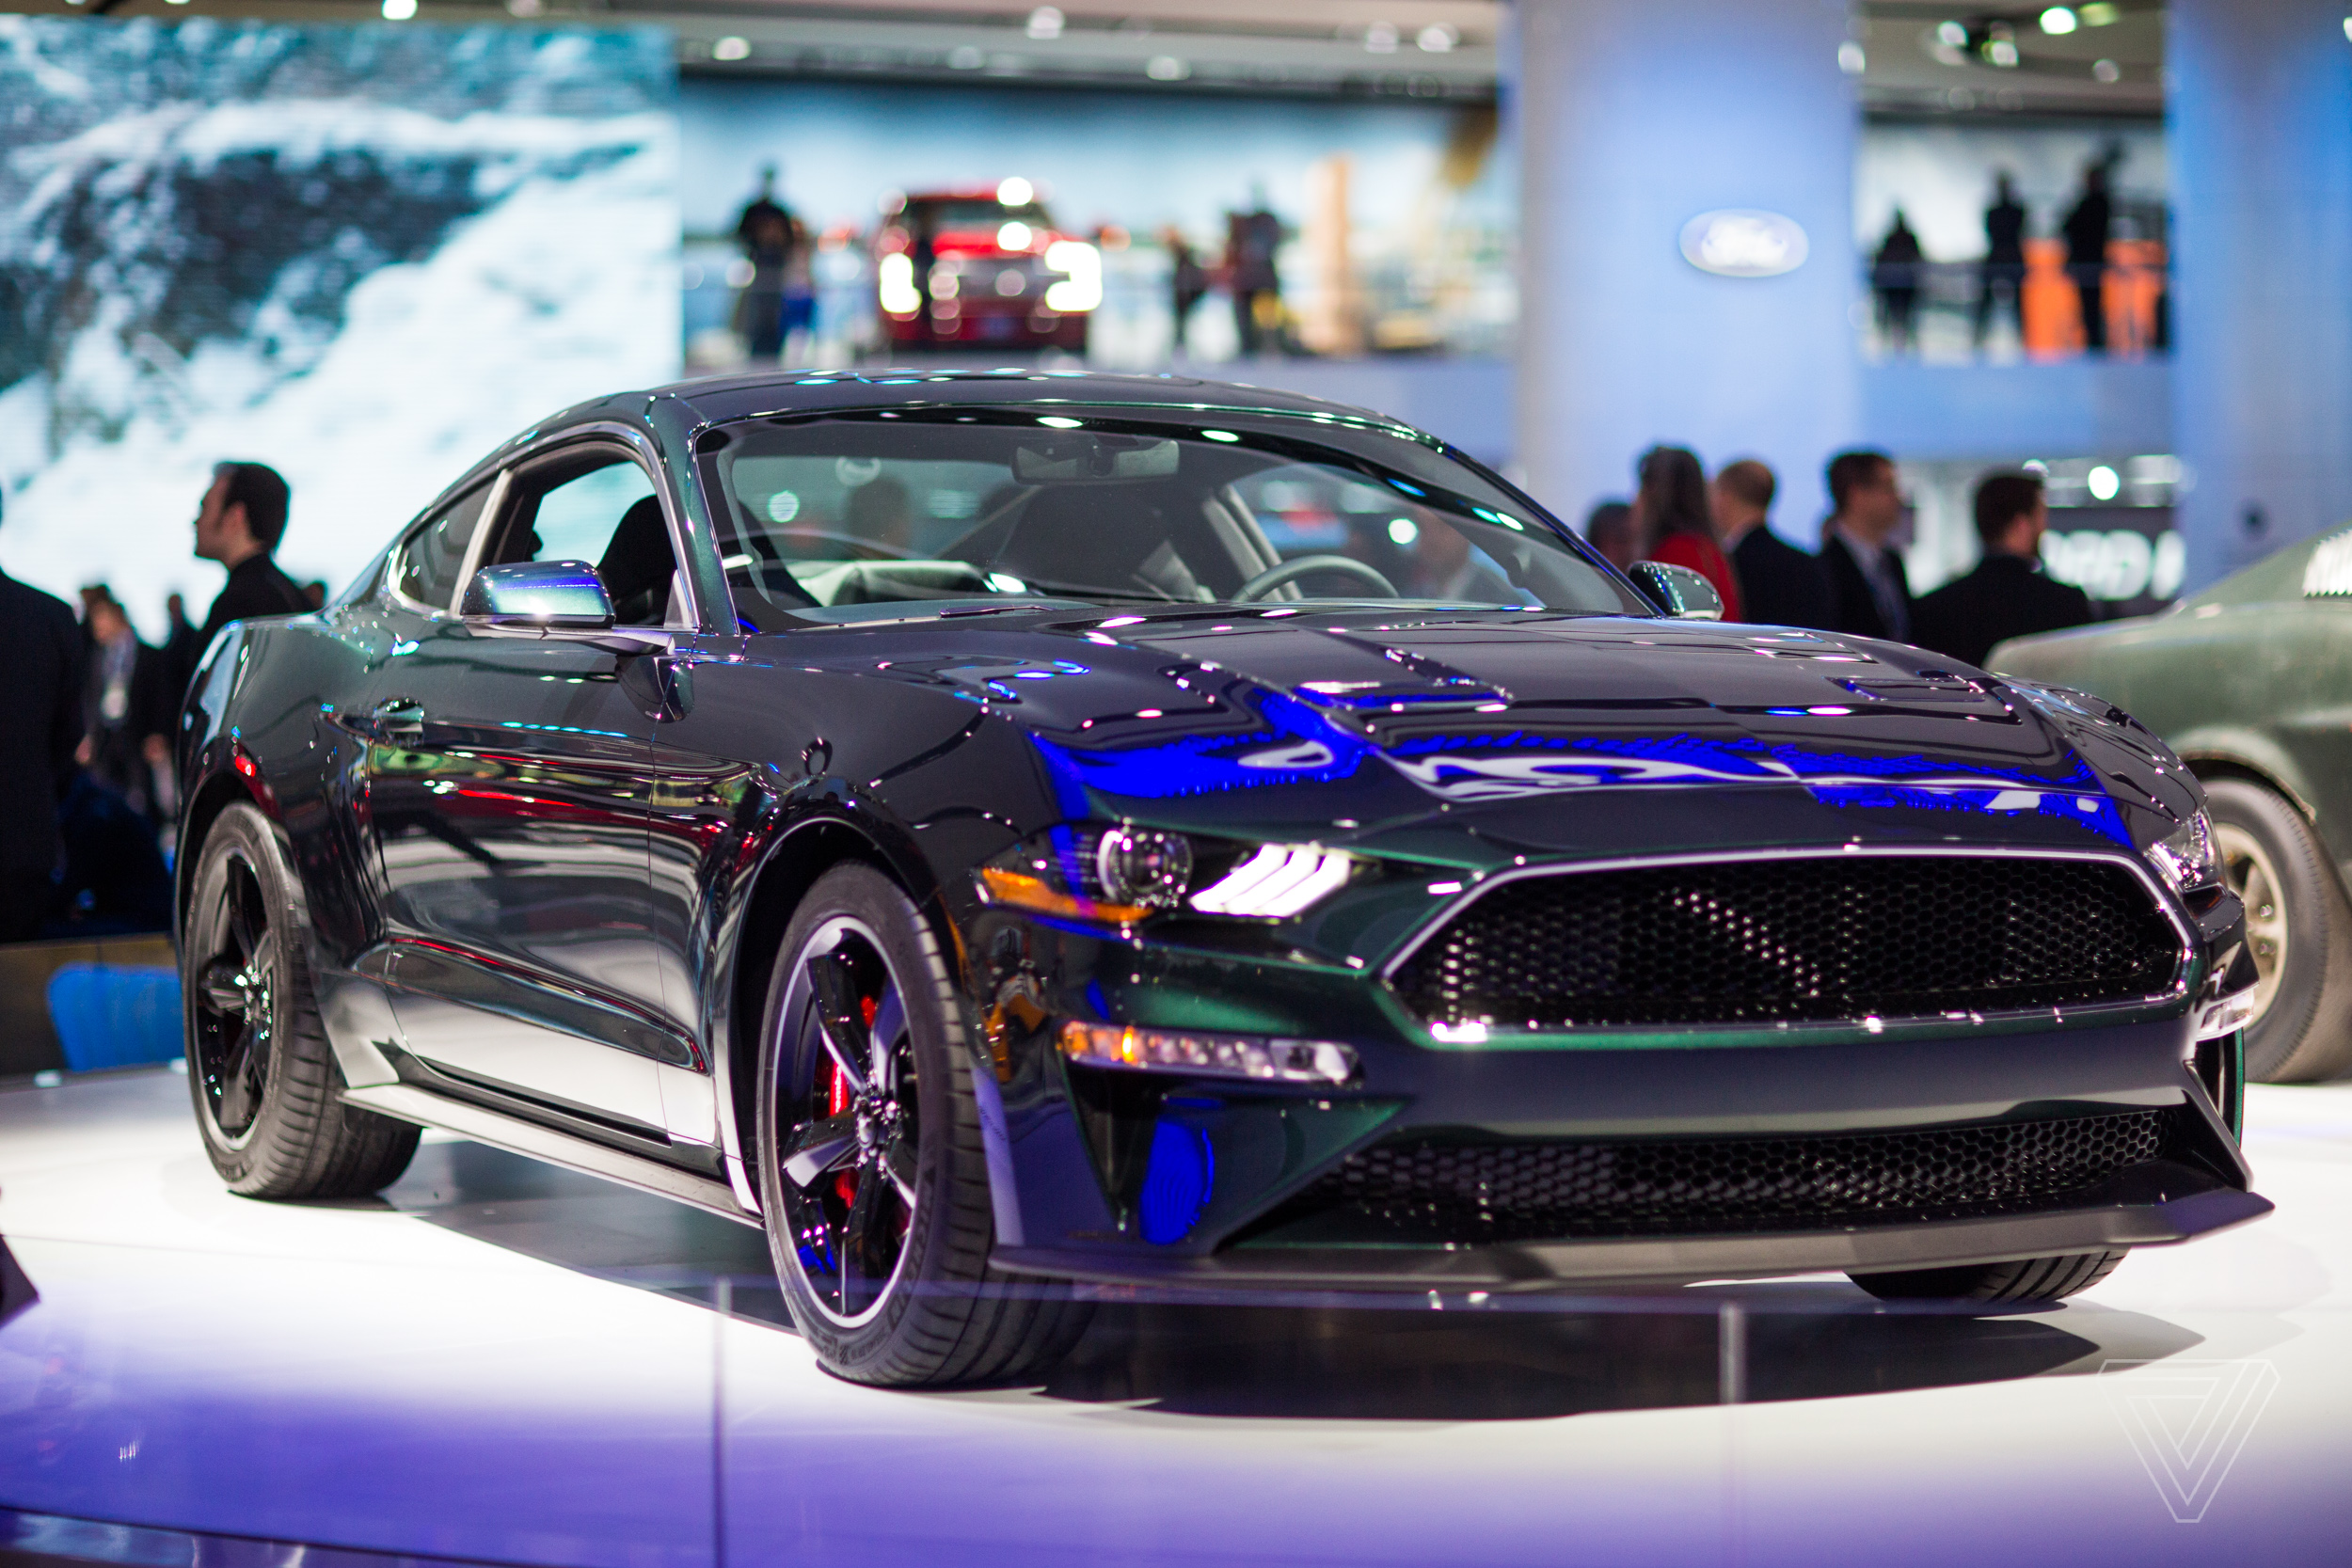 the return of ford mustang bullitt tugs at auto lovers heart strings the verge. Black Bedroom Furniture Sets. Home Design Ideas